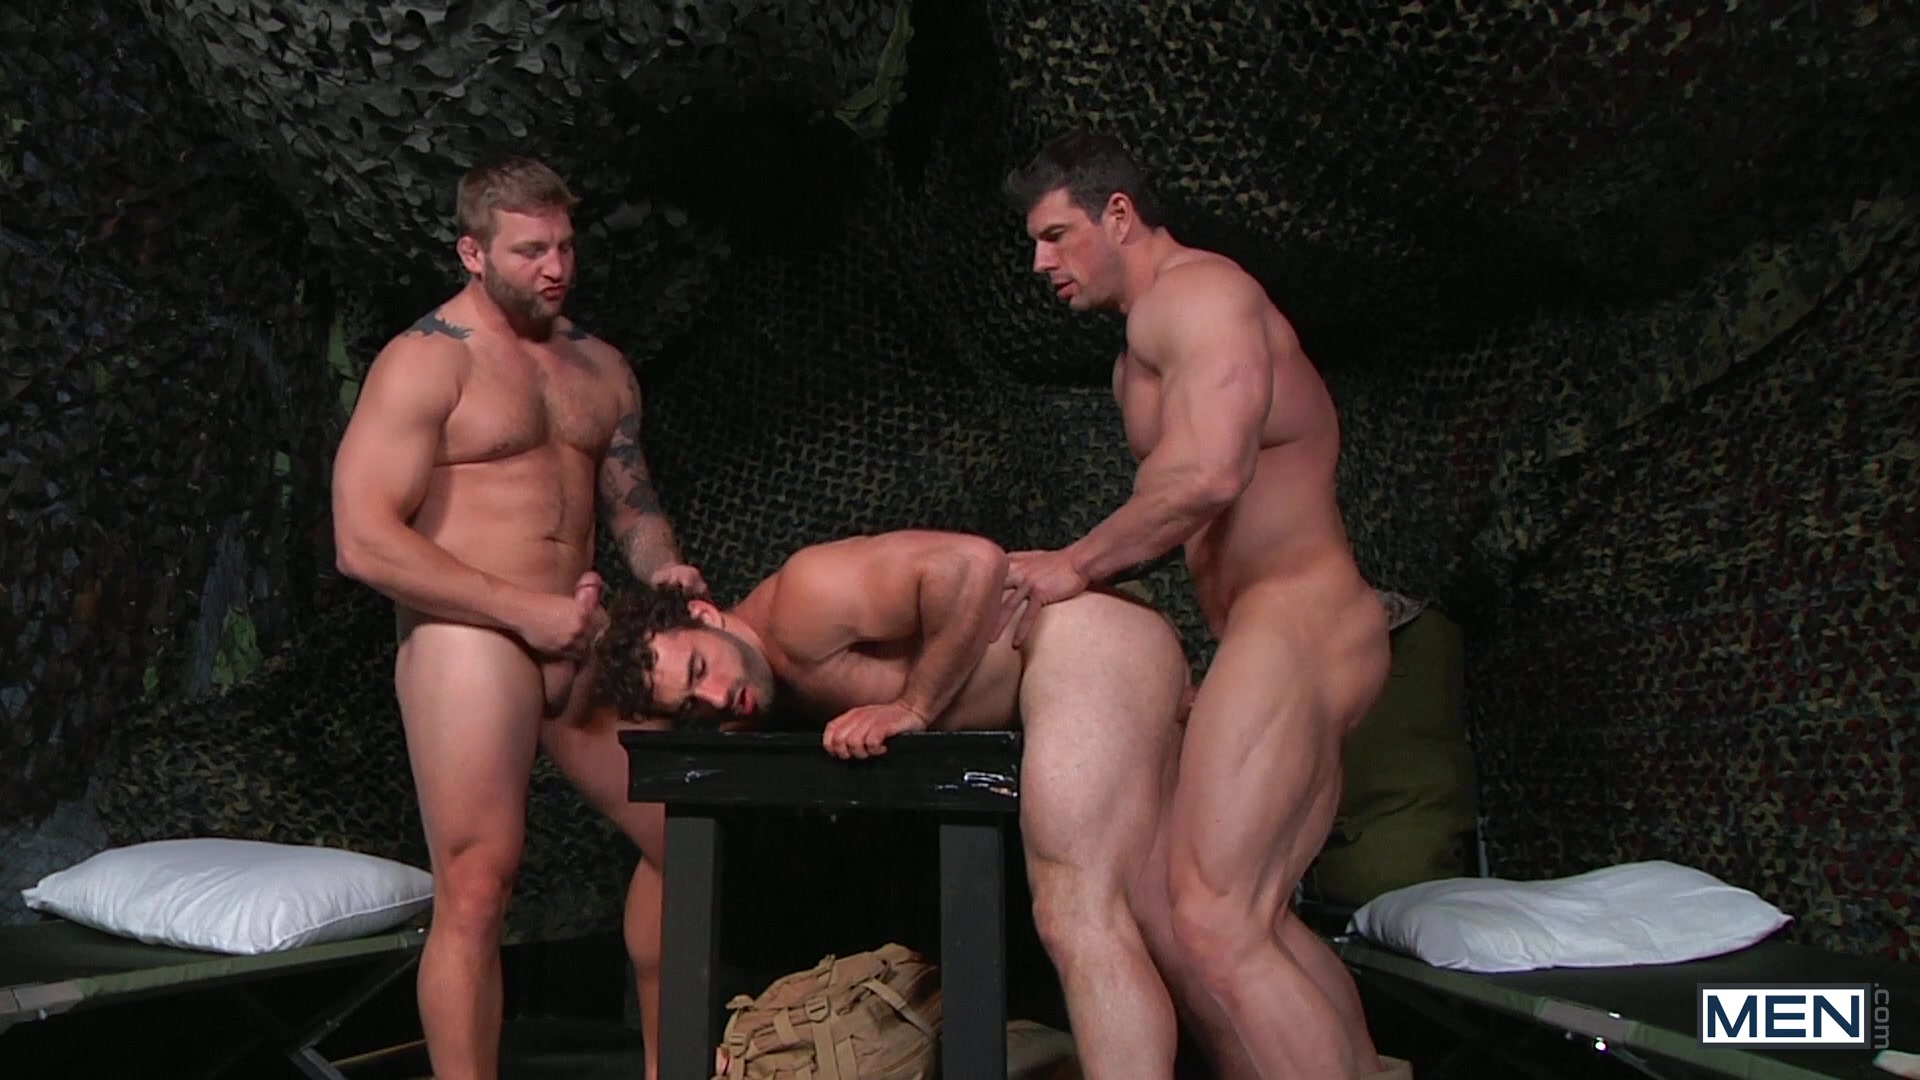 Watch Tour Of Duty Part 3 – Dmh – Drill My Hole – Colby Jansen – Jaxton Wheeler – Zeb Atlas (MEN.COM) Gay Porn Tube Videos Gifs And Free XXX HD Sex Movies Photos Online